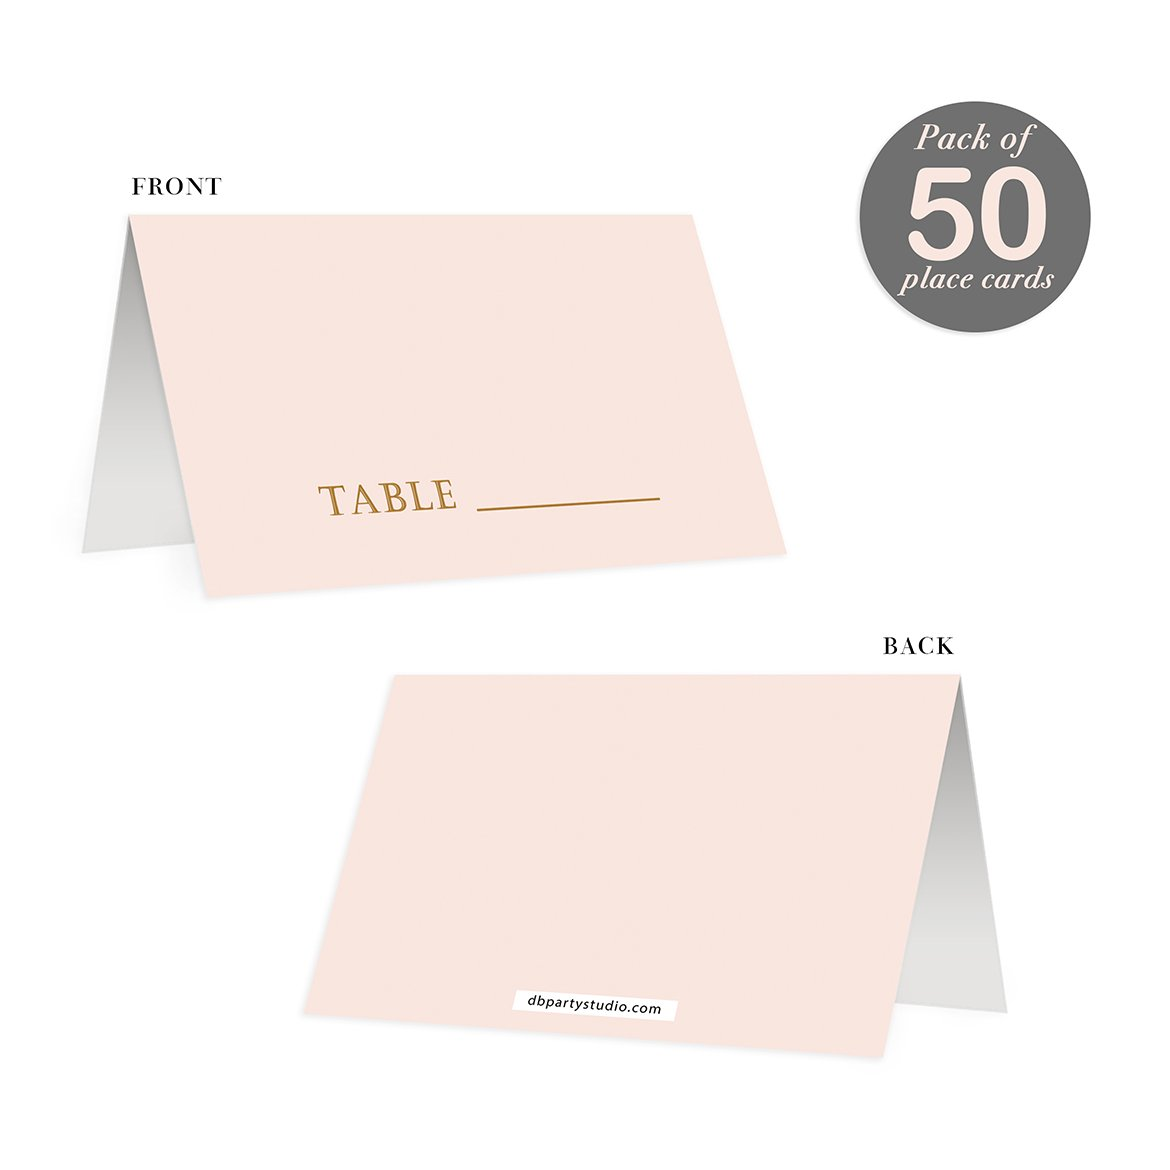 Blush Pink Place Cards 50 Pack Wedding Arranged Table Seating Blank Escort Reserved Named Seat Premium Quality Scored Easy Folding Tented 3.5 x 2 Reception Baby Shower Birthday College Graduation